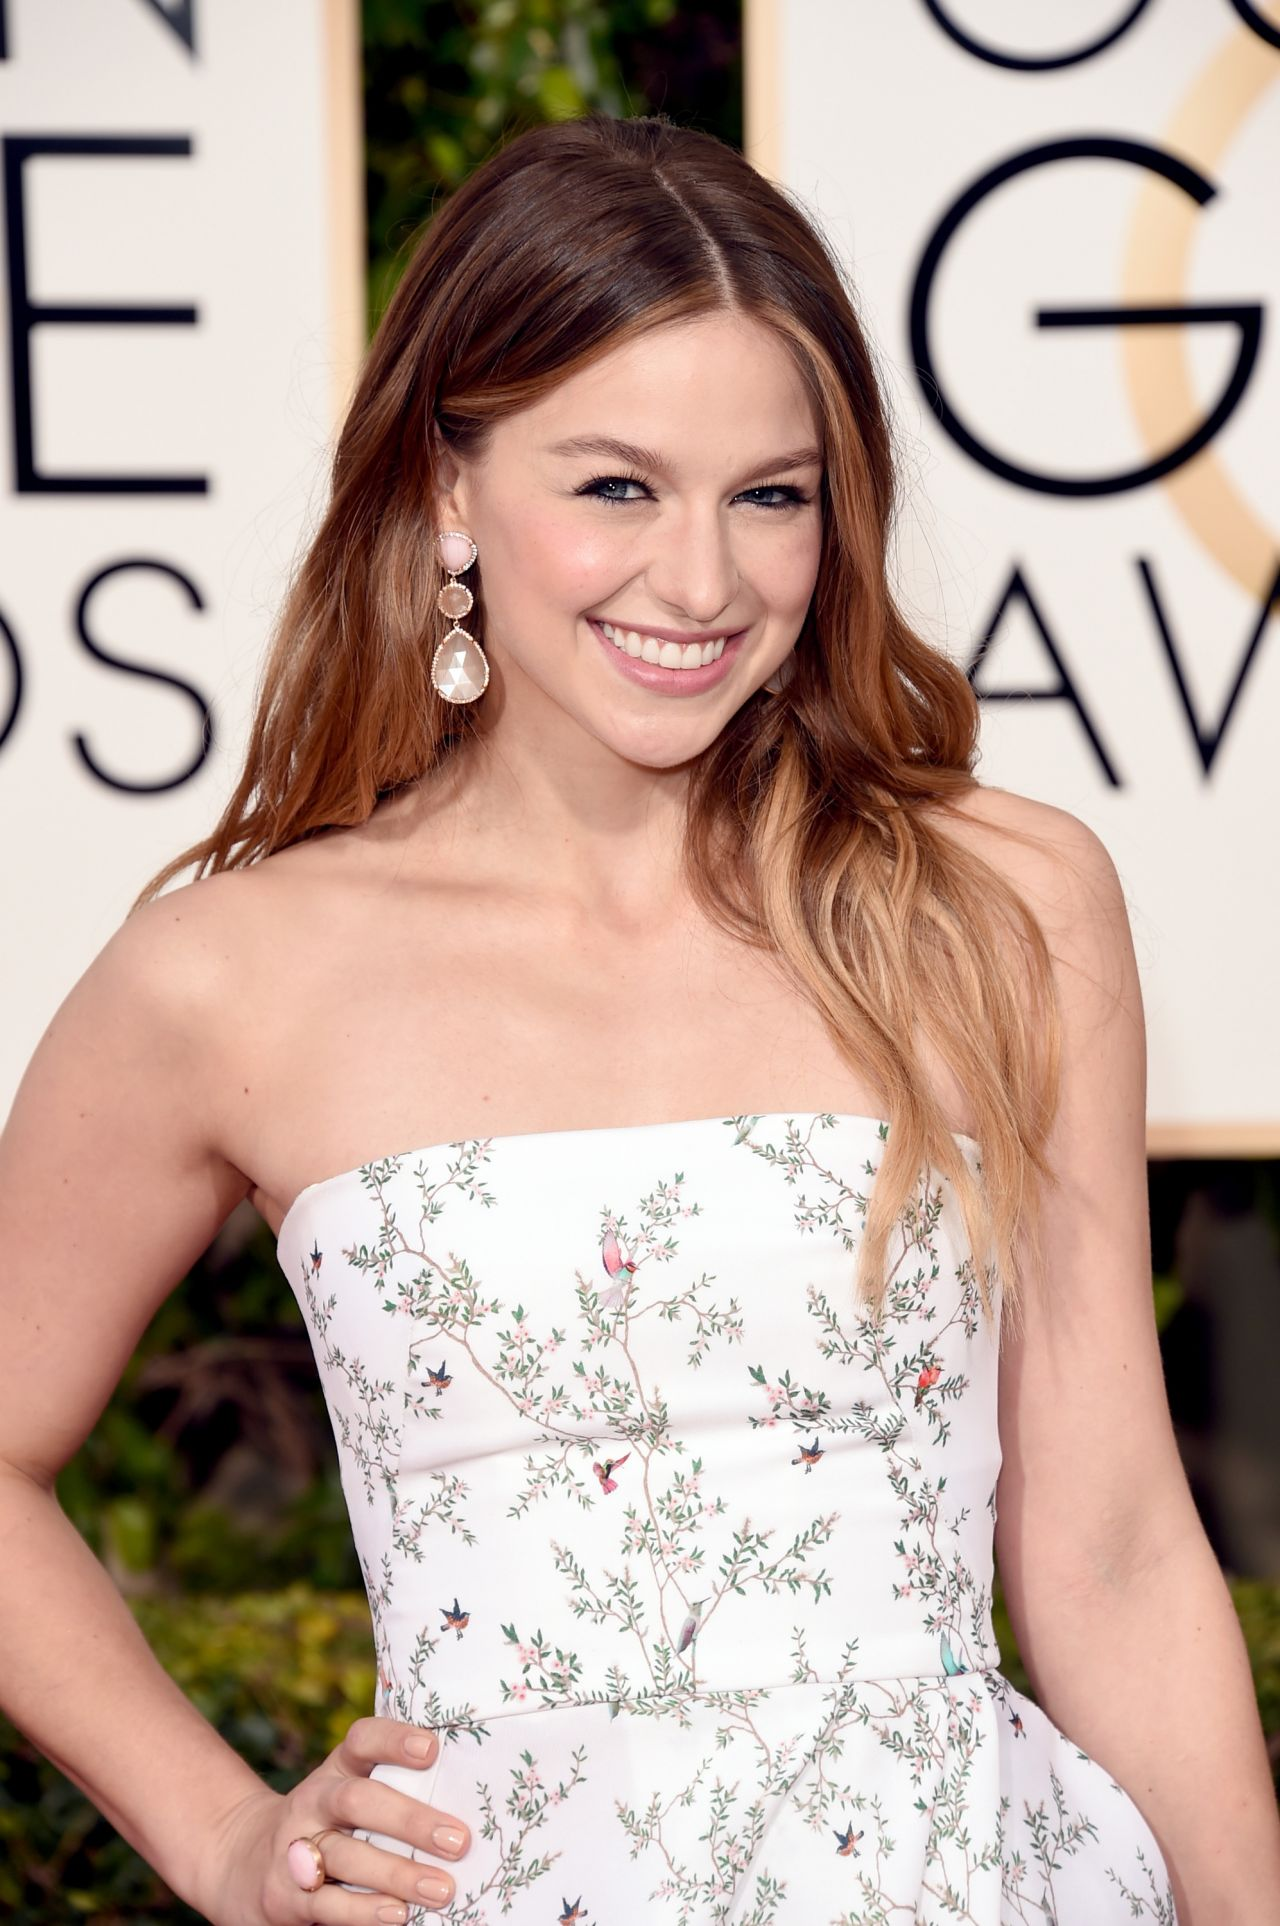 melissa-benoist-2016-golden-globe-awards-in-beverly-hills-1